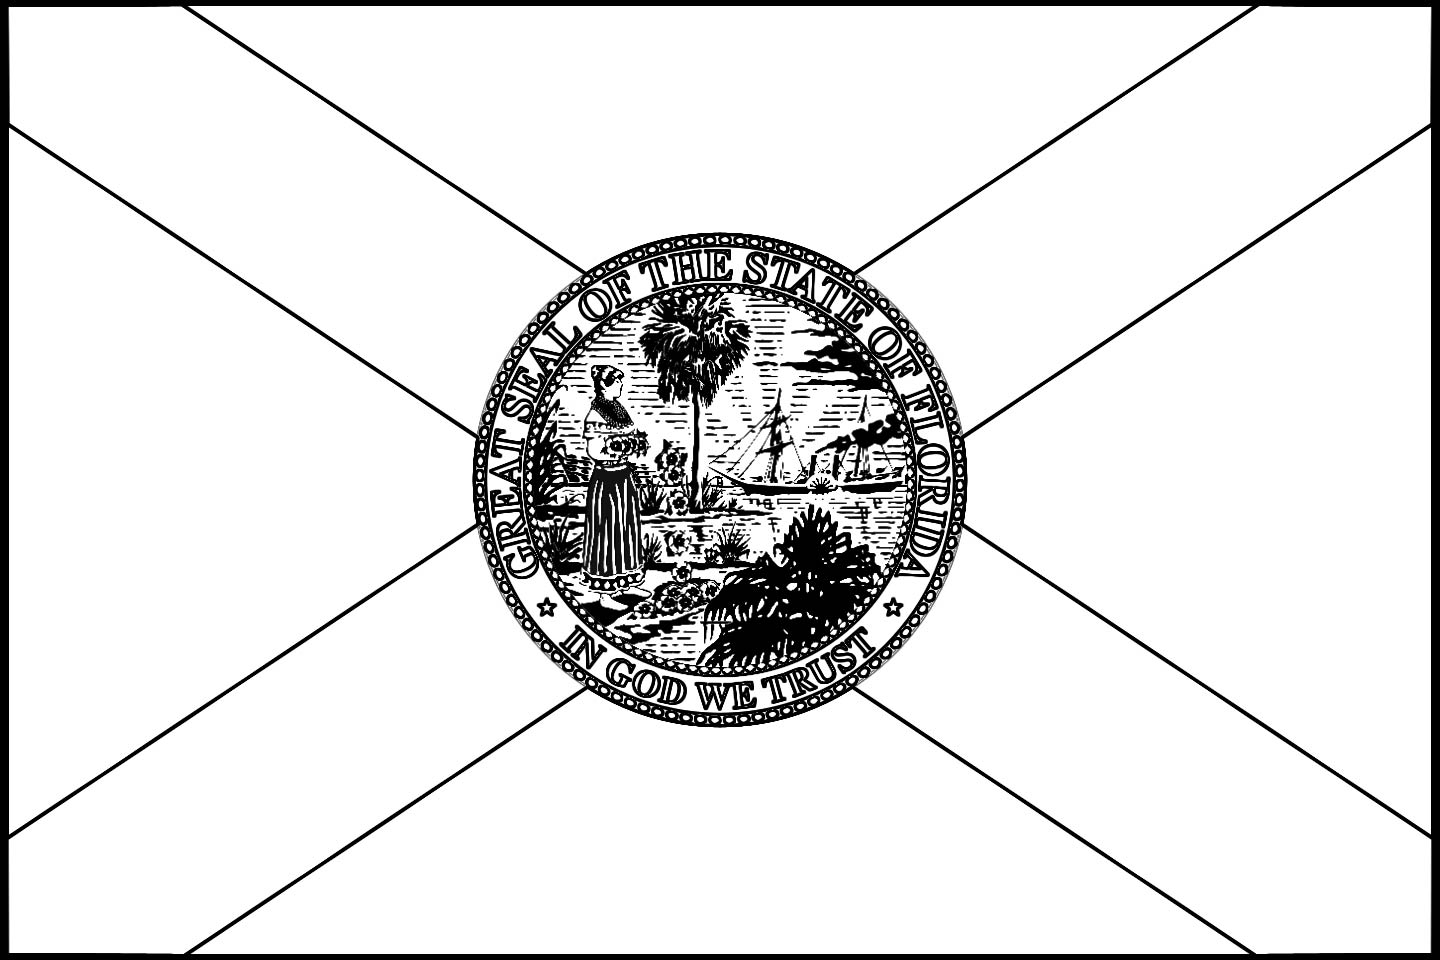 how to draw florida state flag florida state flag to how state florida draw flag